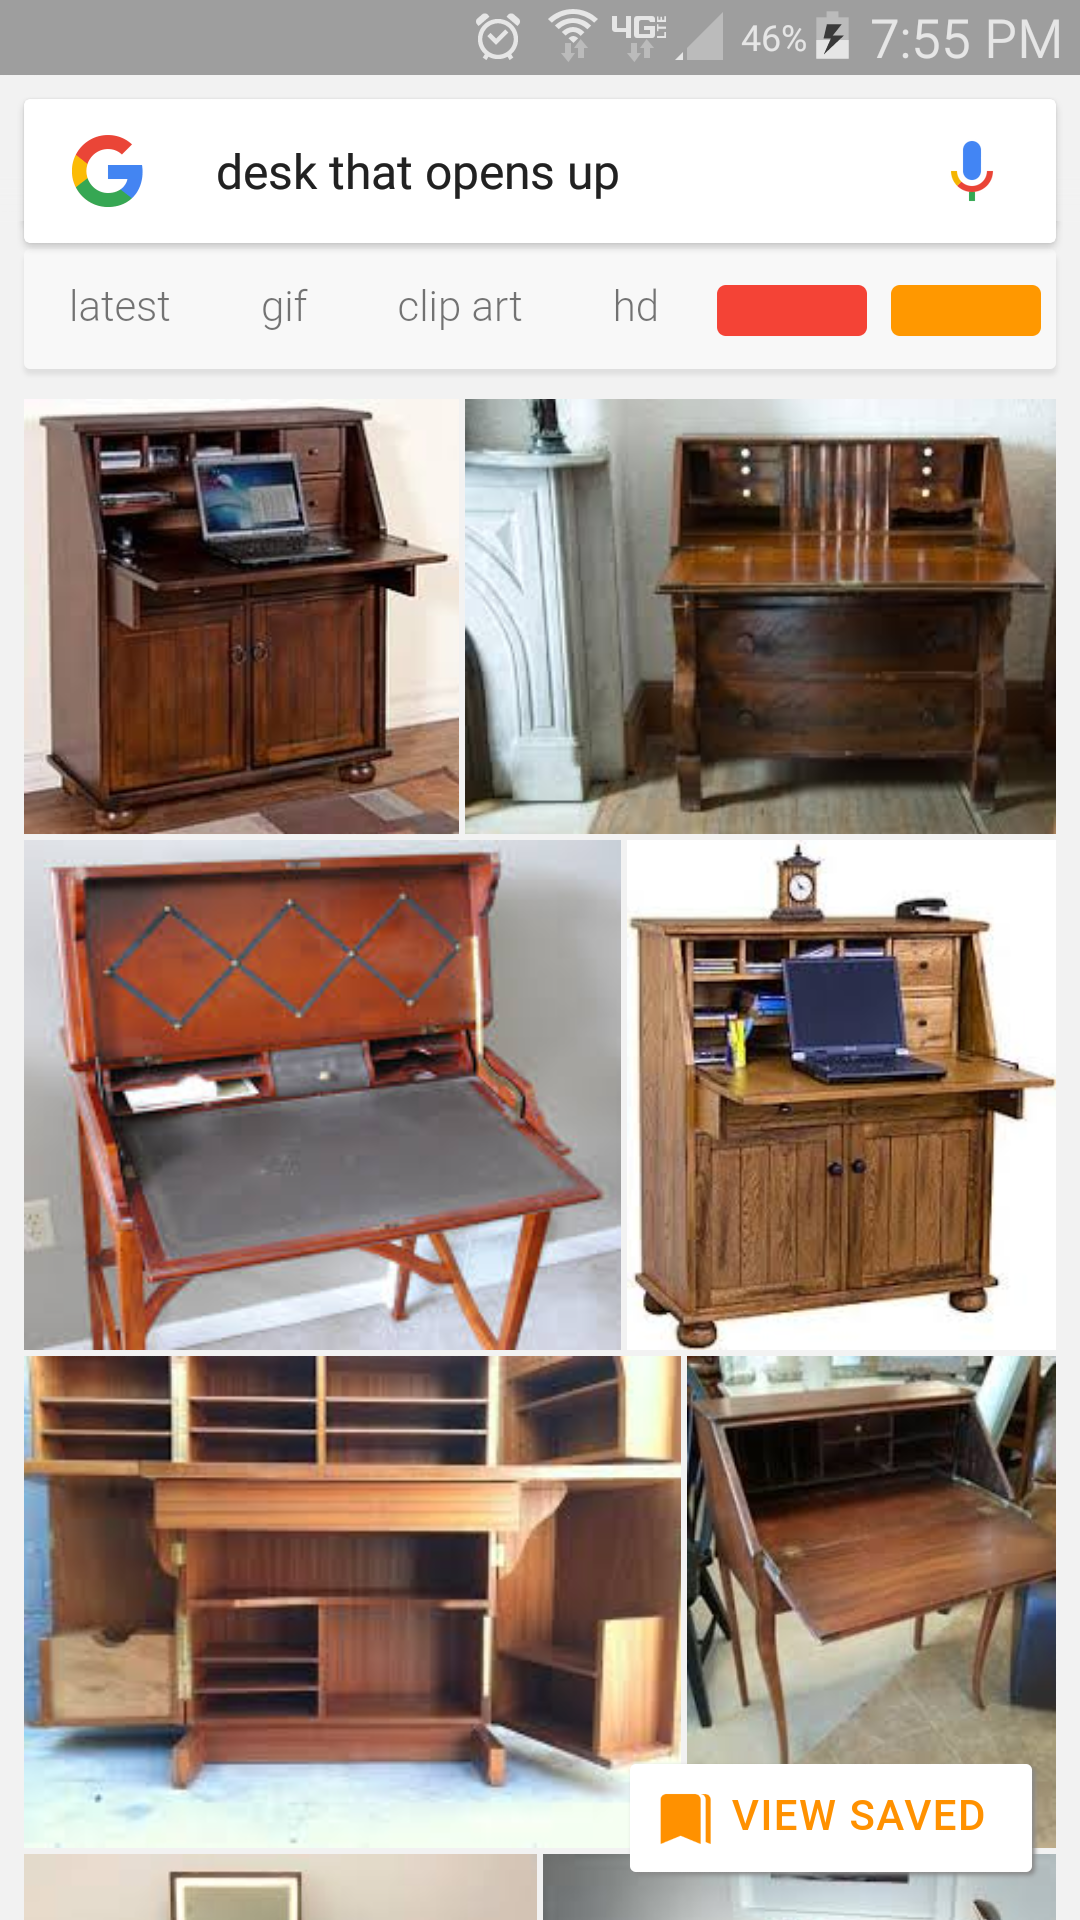 Iso don't know the word for them but a desk that opens up!